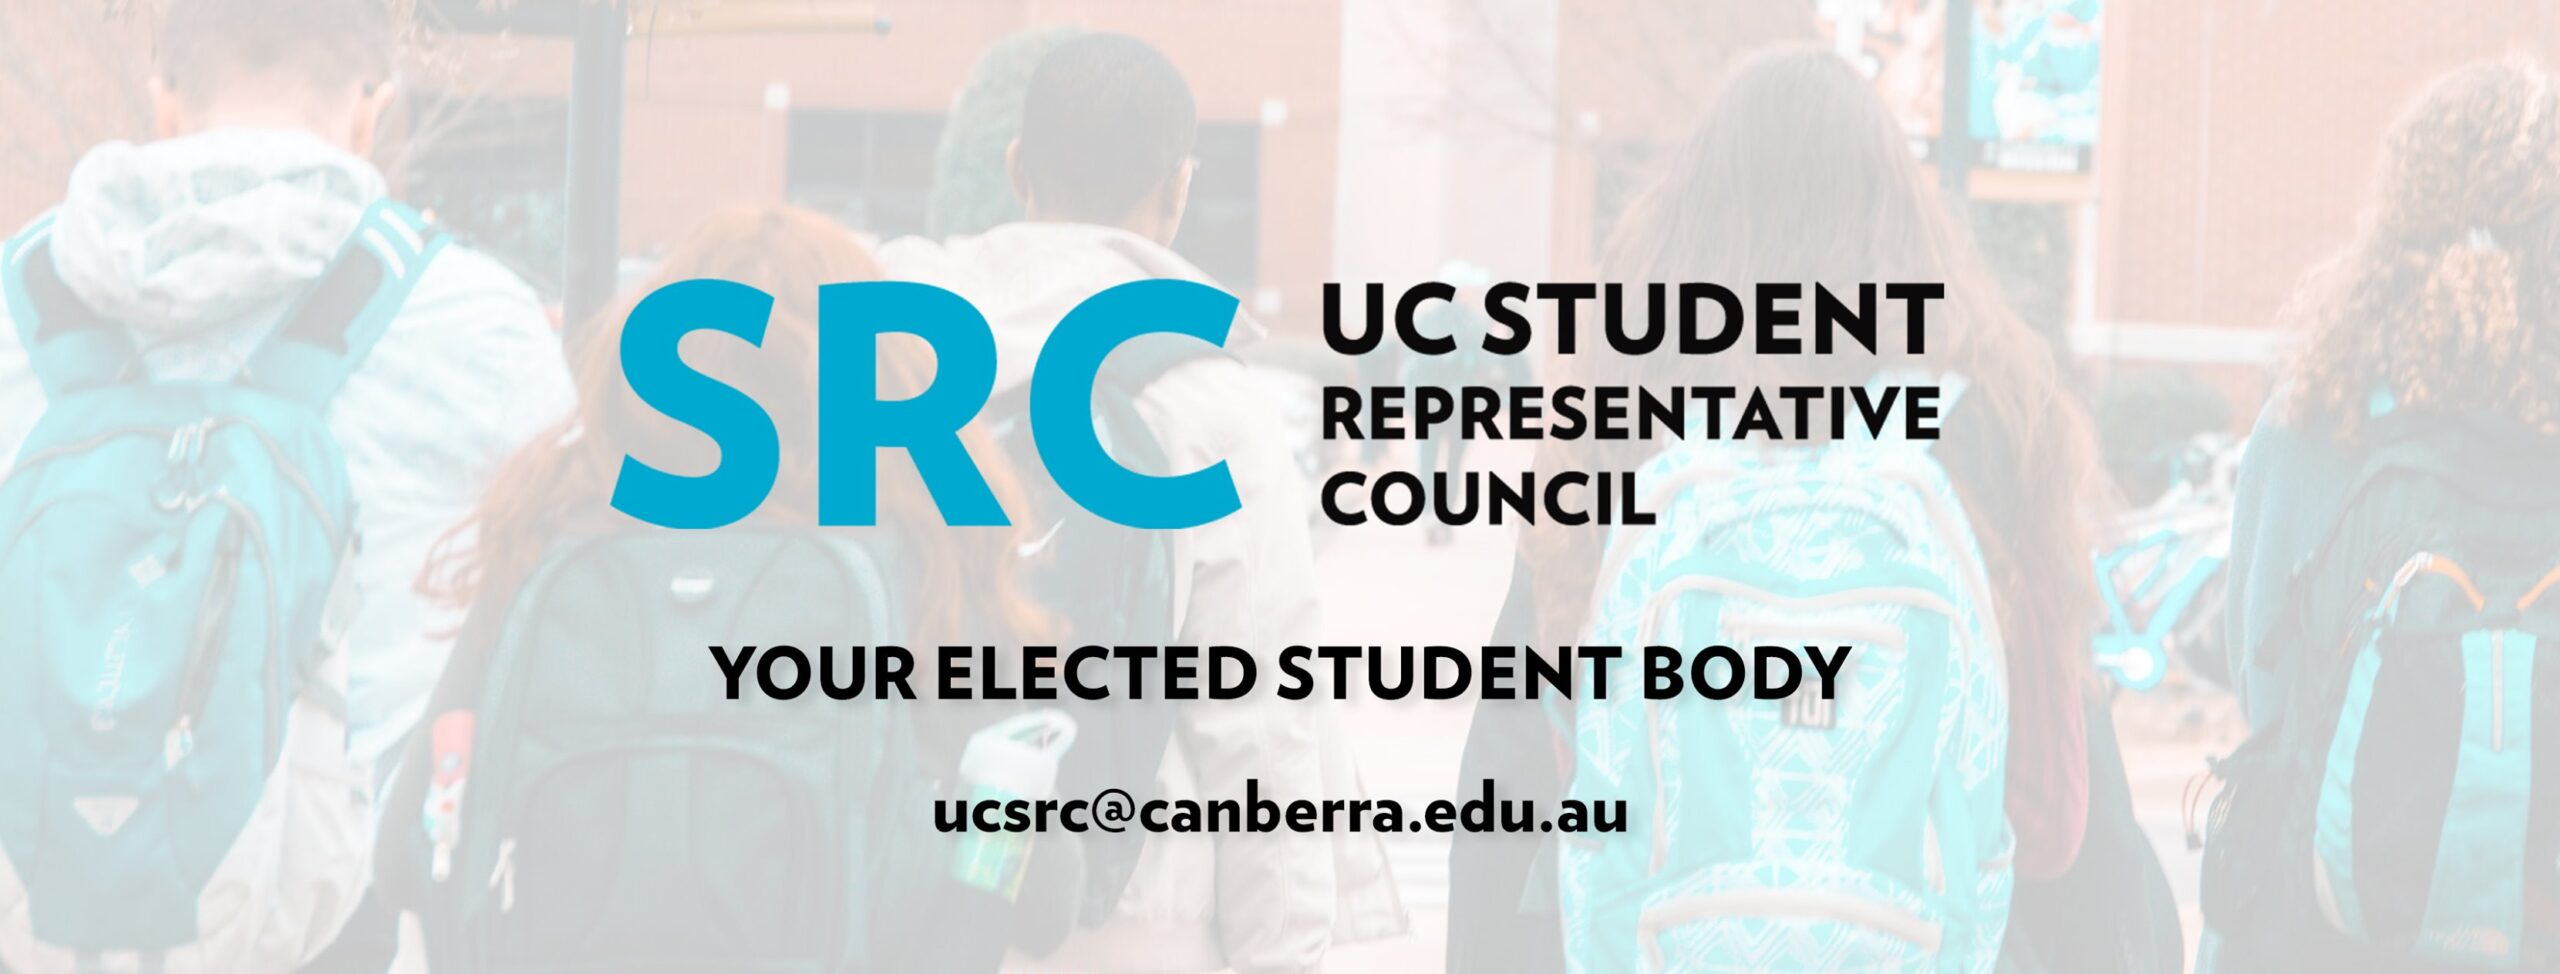 SRC, your elected student body